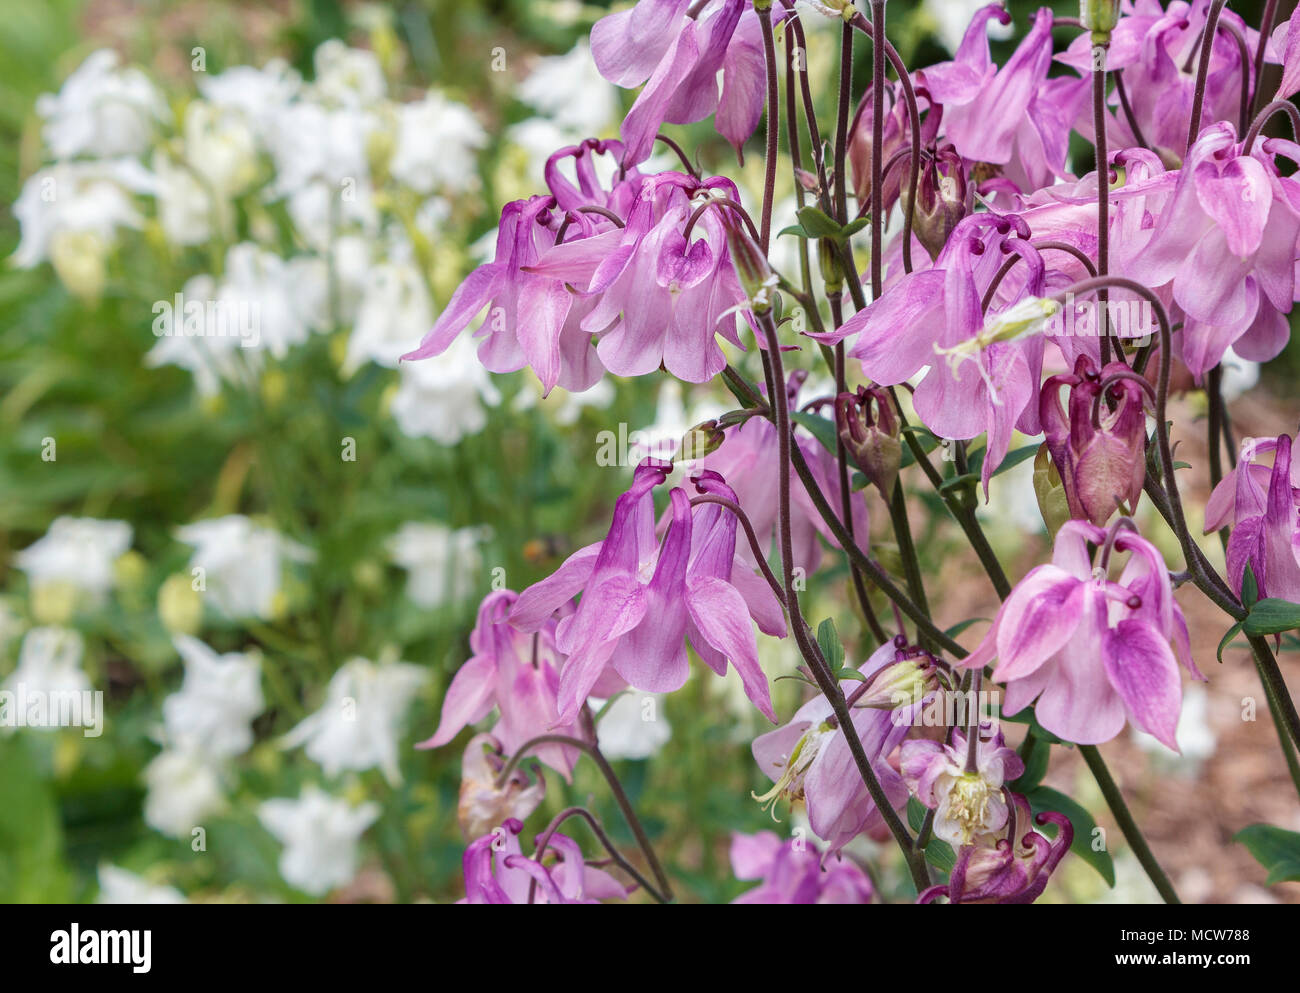 Bright pink columbine flowers with long nectar spurs are seen bright pink columbine flowers with long nectar spurs are seen close up against a blurred background of white flowered columbines and green foliage izmirmasajfo